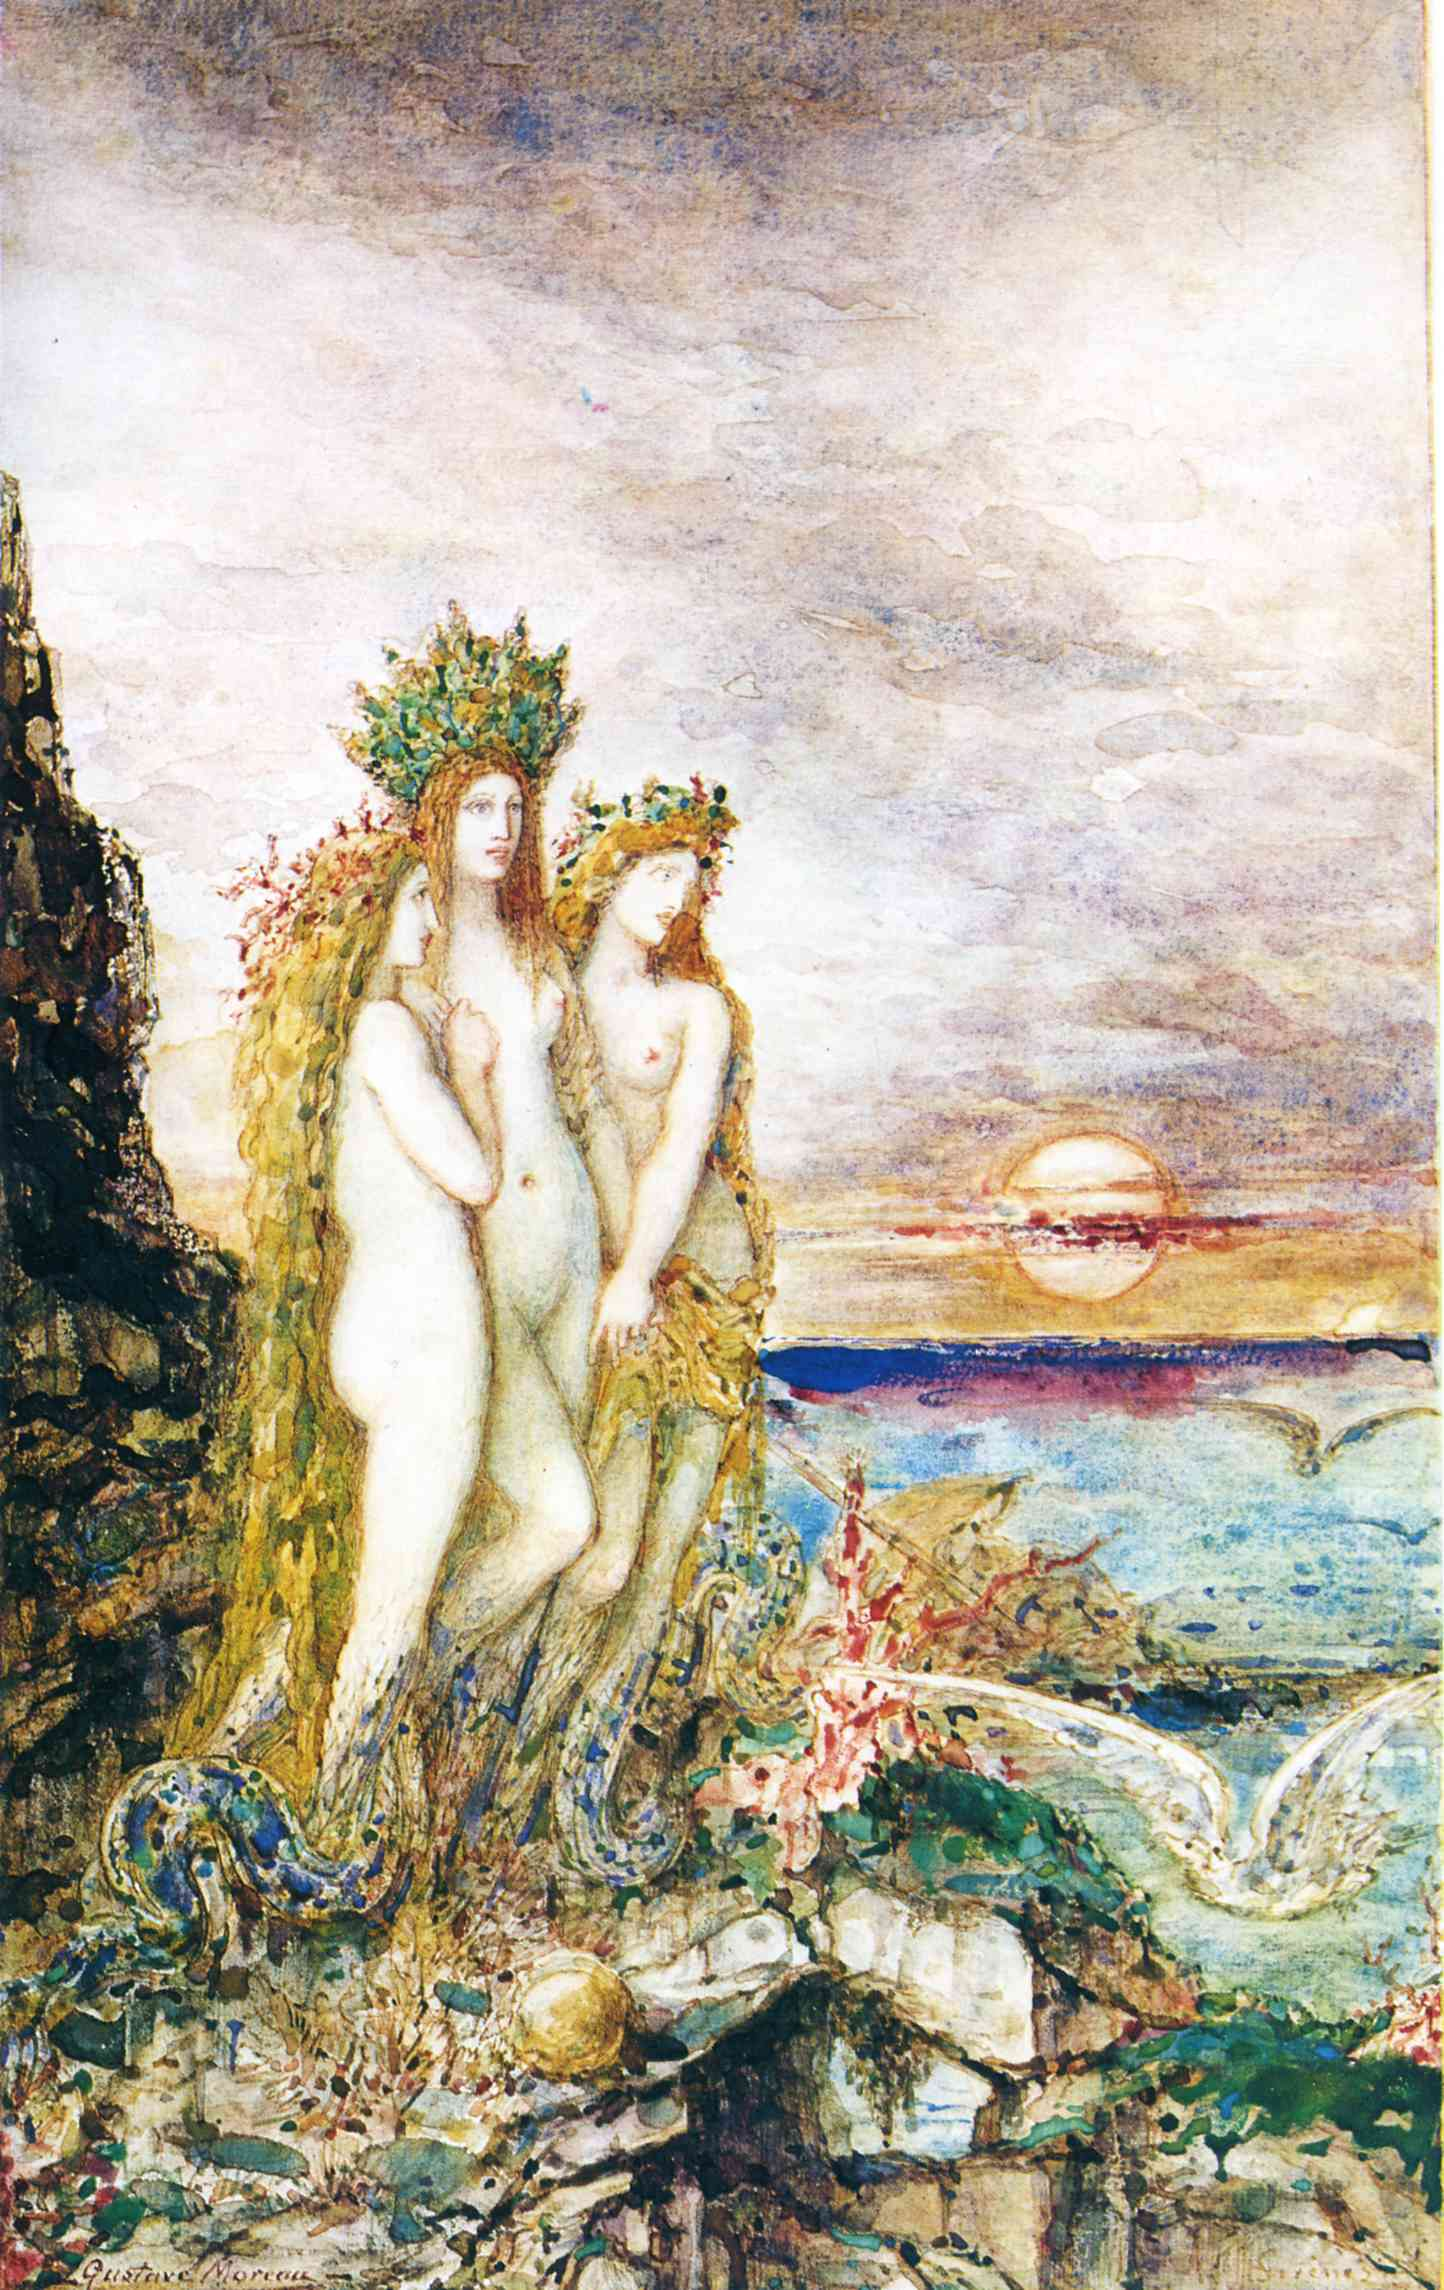 Gustave Moreau - The Sirens 1872